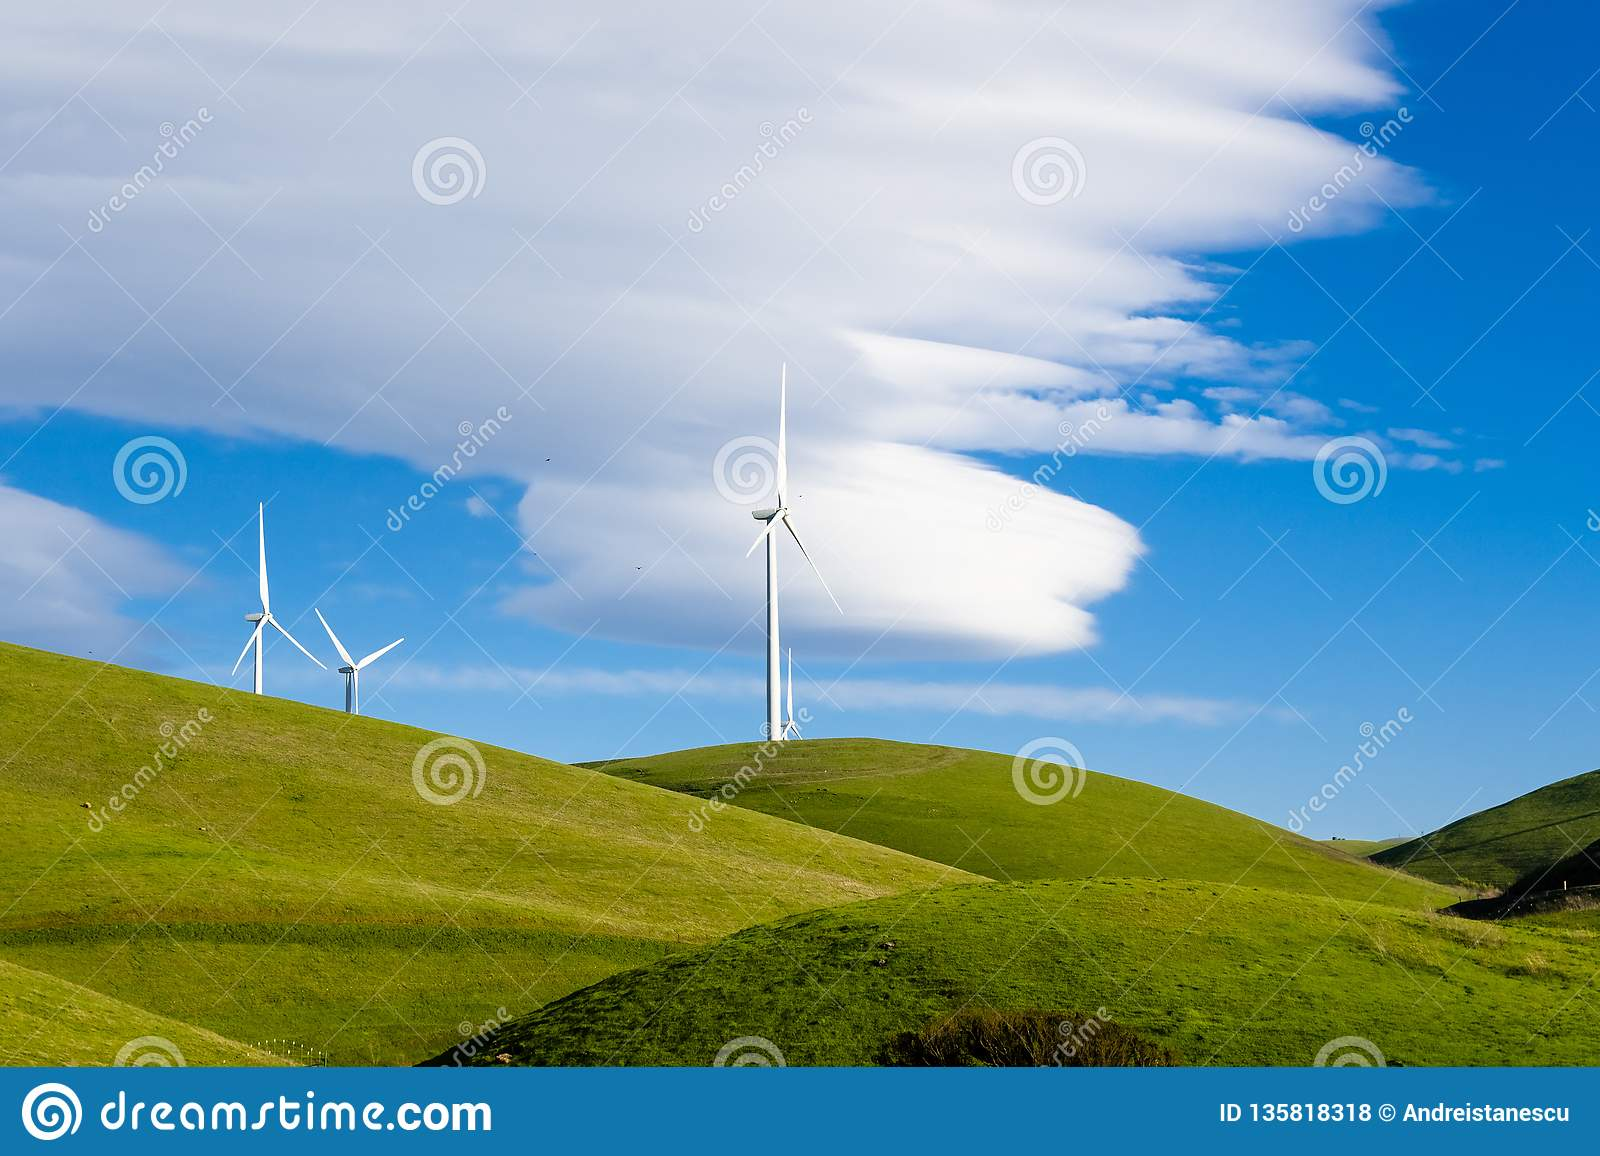 Wind Turbines On The Hills Of East San Francisco Bay Area, Altamont